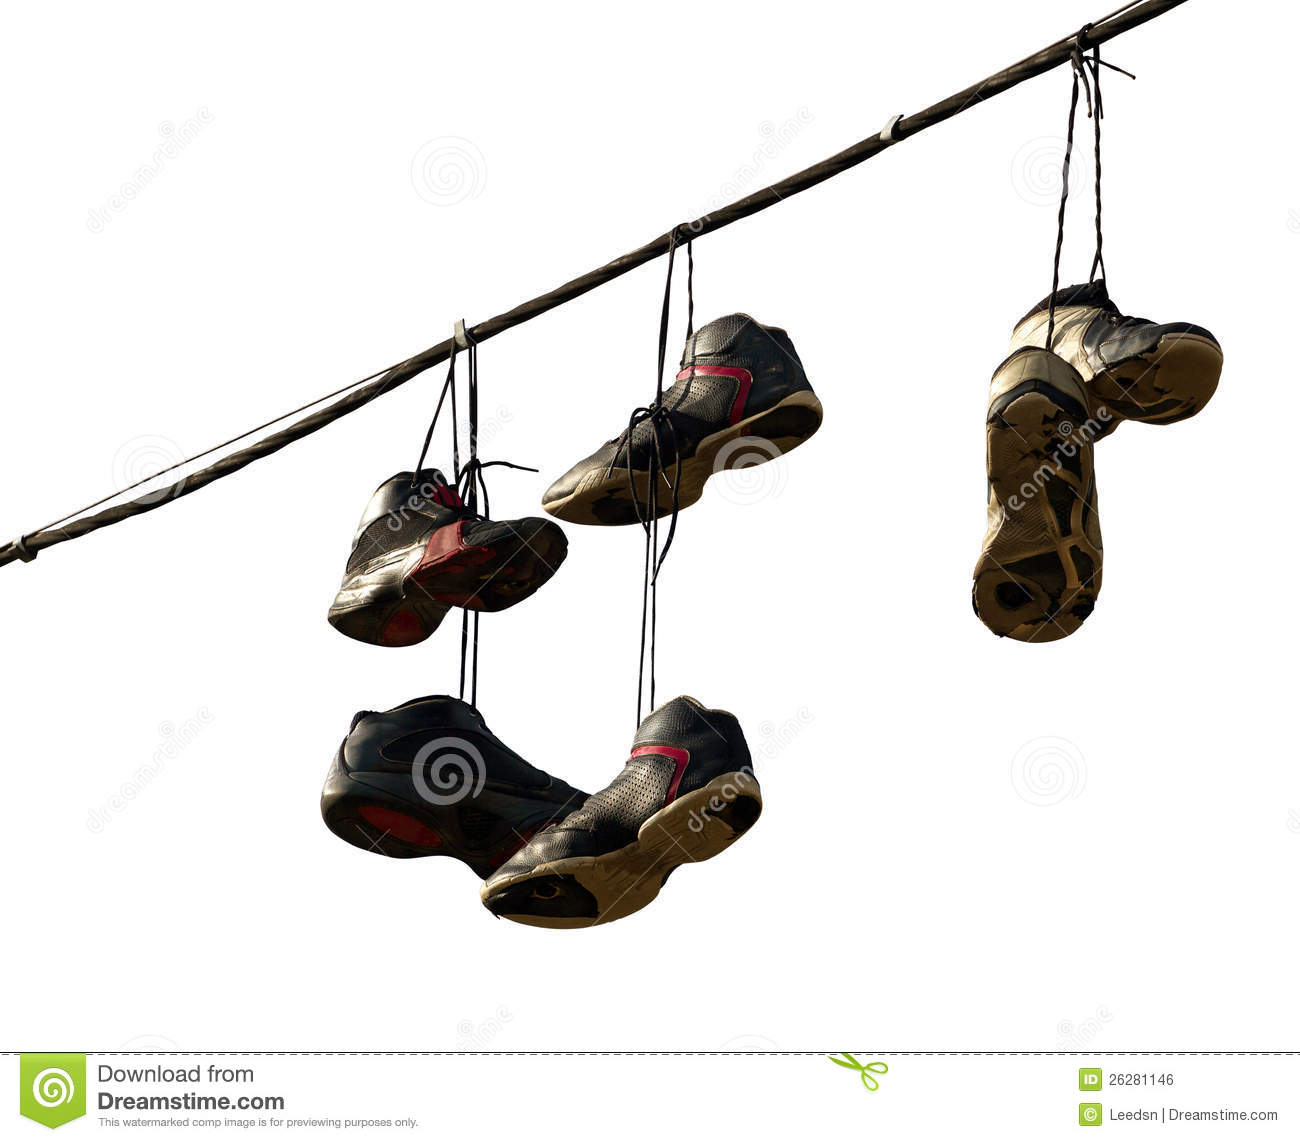 Sneakers Hanging On A Telephone Line Stock Photo - Image of lines ...